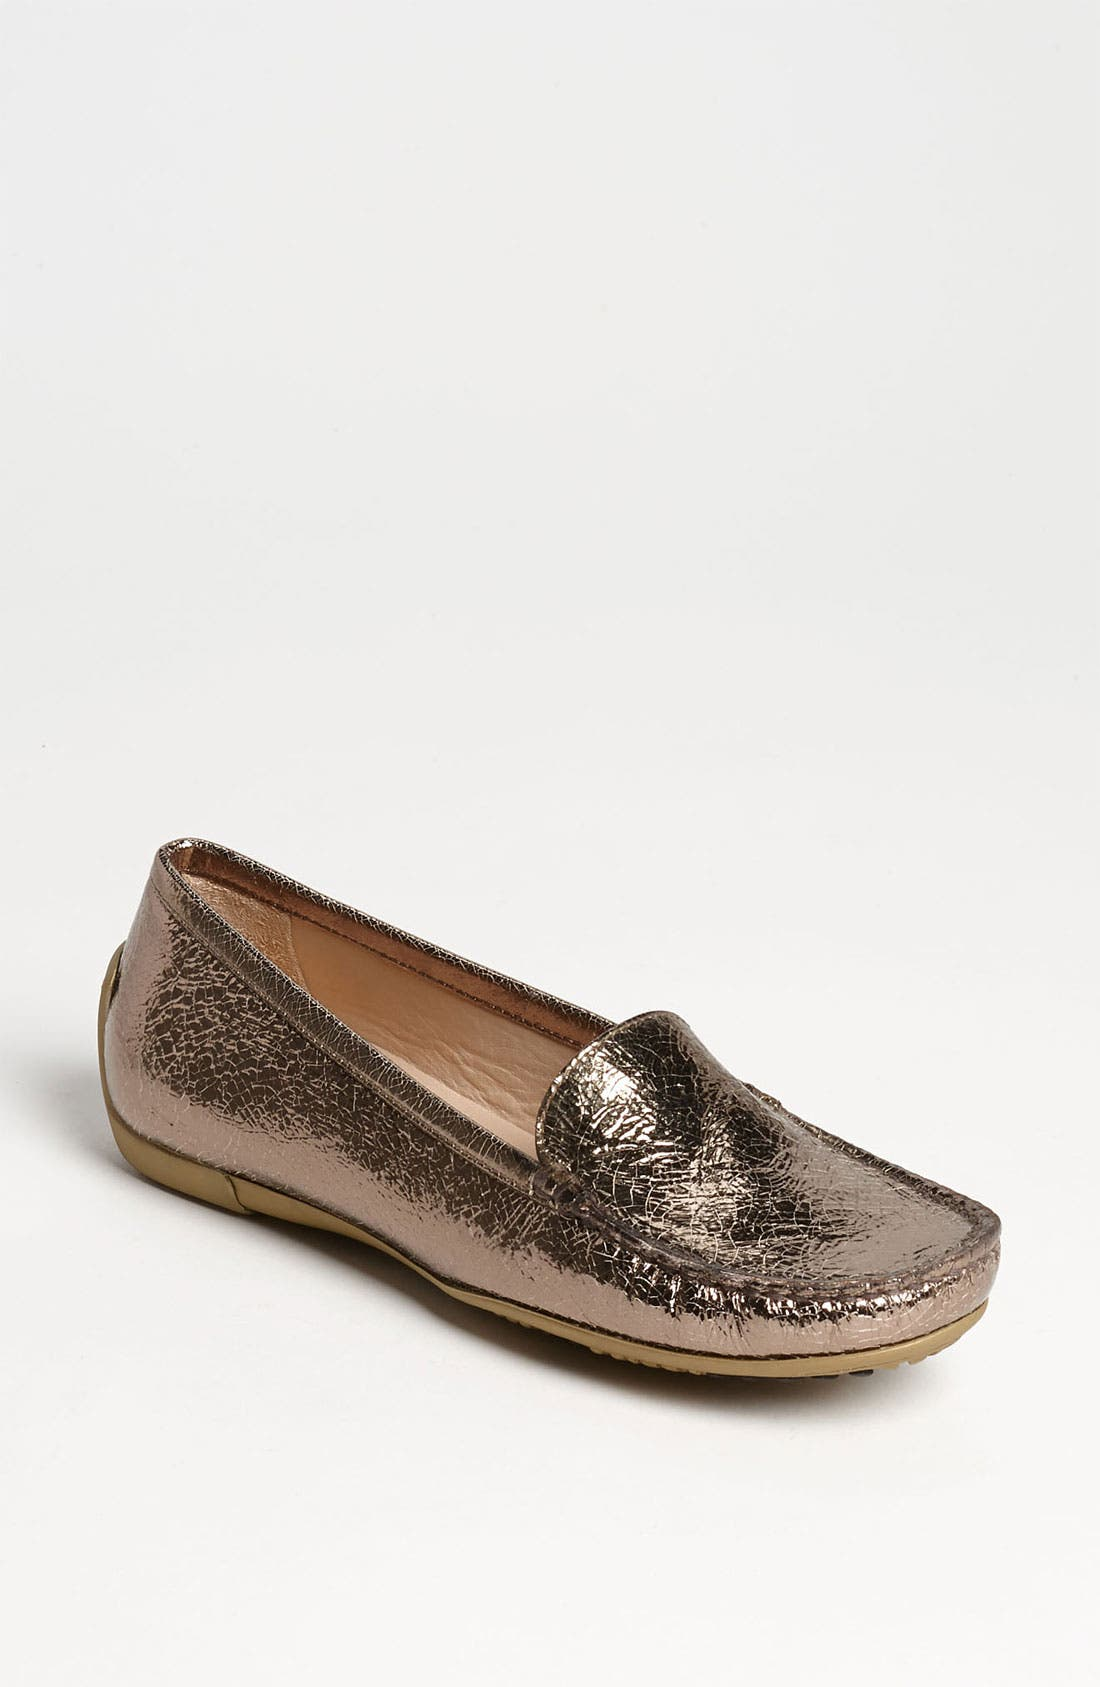 Alternate Image 1 Selected - Stuart Weitzman 'Mach1' Loafer